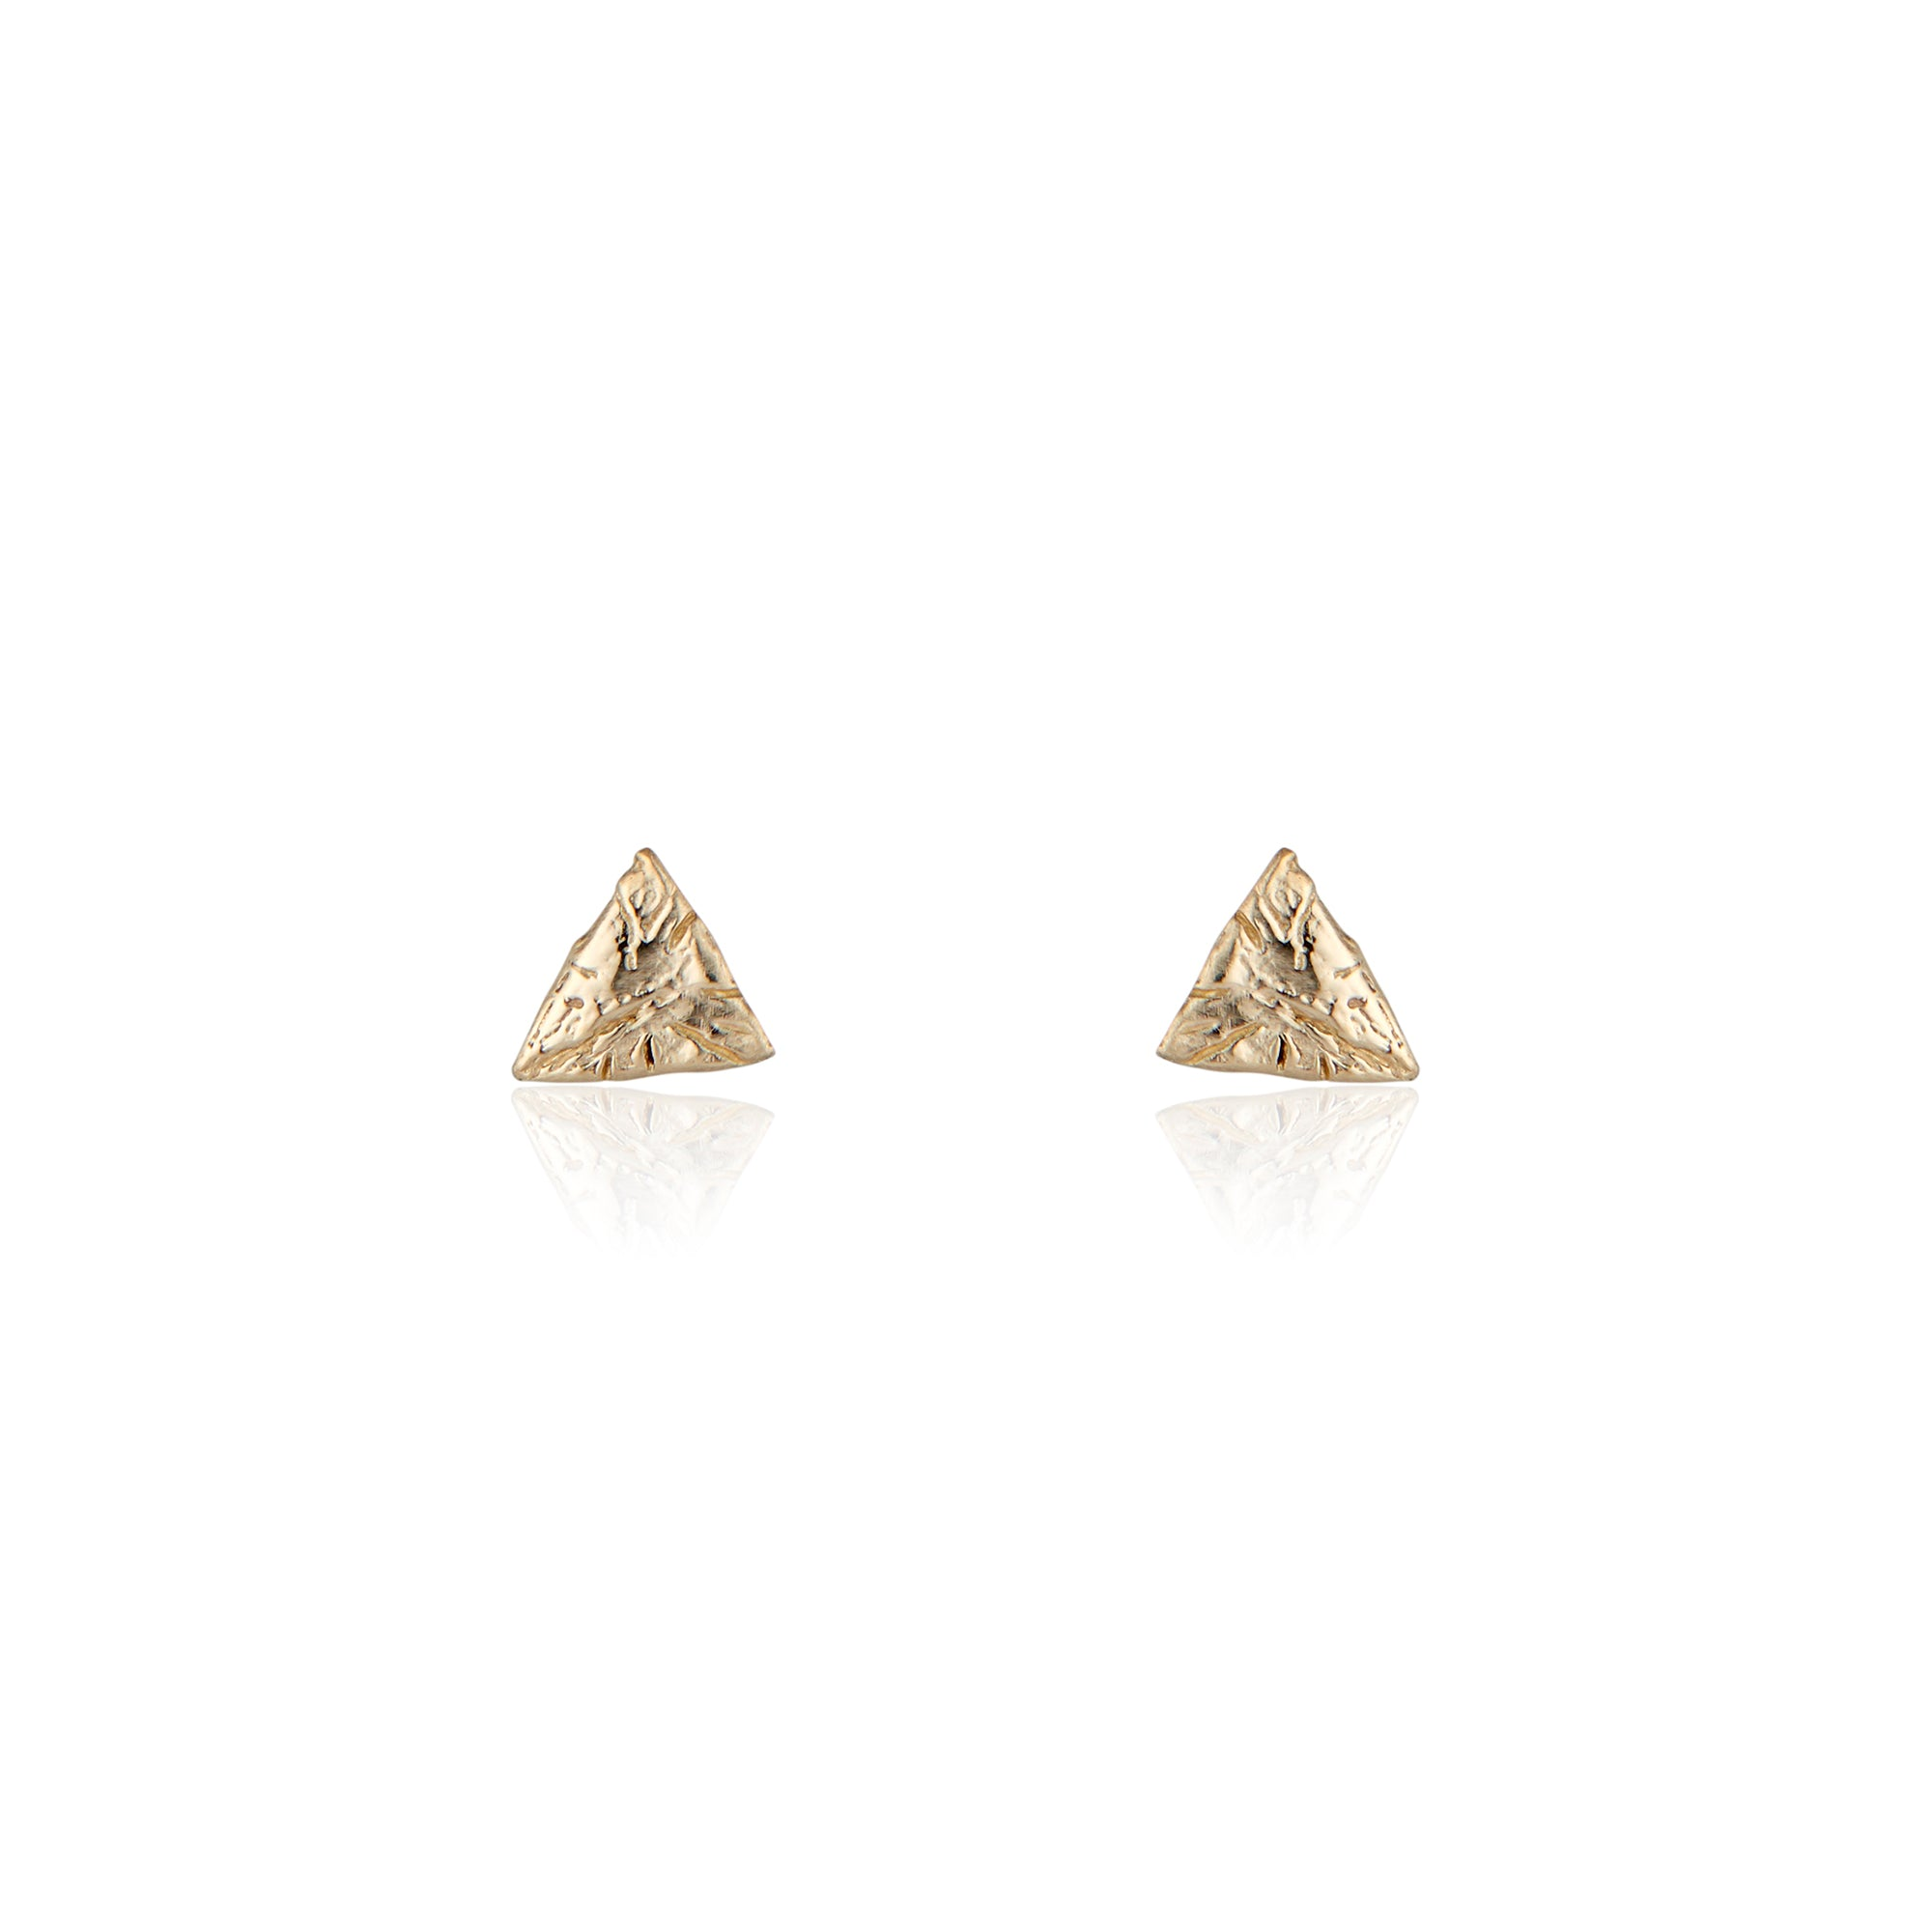 tiny gold studs, solid gold studs, natalie mcmillan jewelry, triangle earrings, solid gold earrings, holiday gift ideas, gifts for bridesmaids, los angeles style, earrings for any occasion, statement earrings